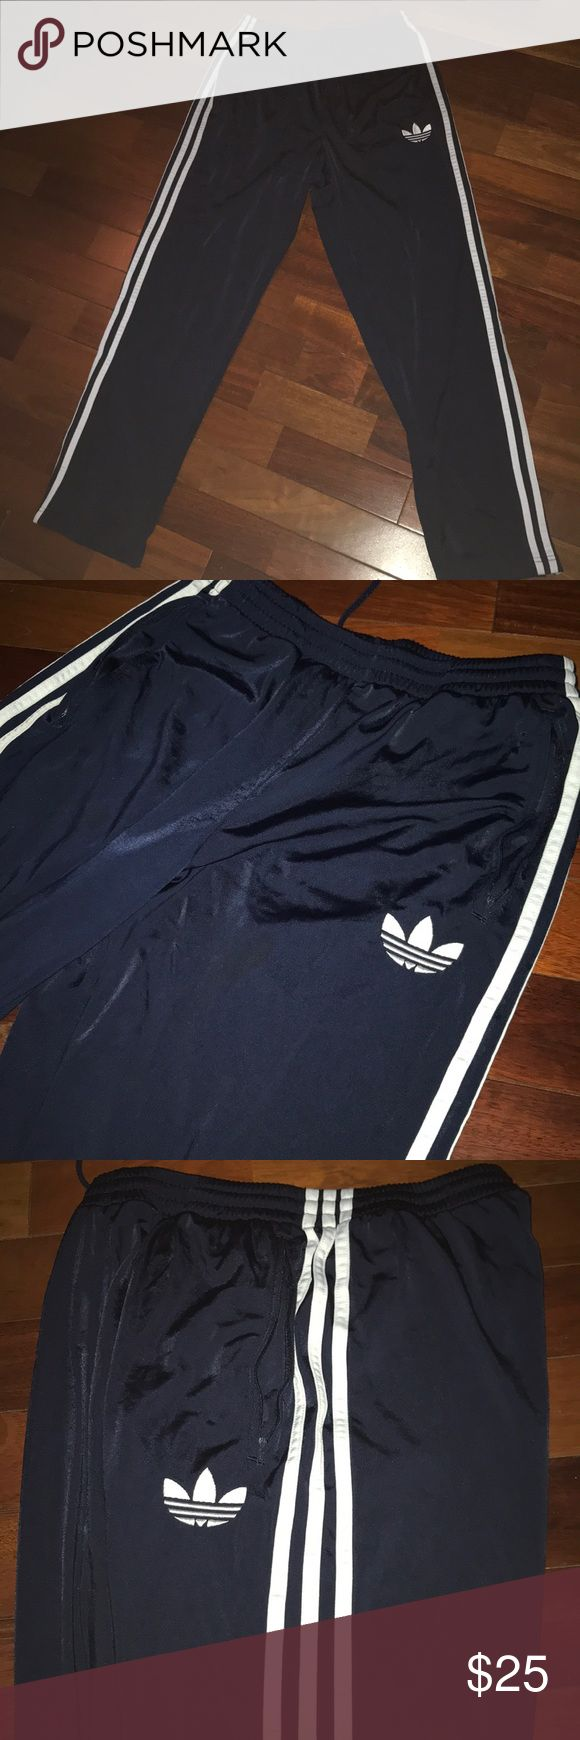 Adidas Original Track Pants Very good to work out in, run in, and other types of physical activity. Also good for lounging and hanging out. Very classic style. NAVY. Price can be negotiated. 😊 adidas Pants